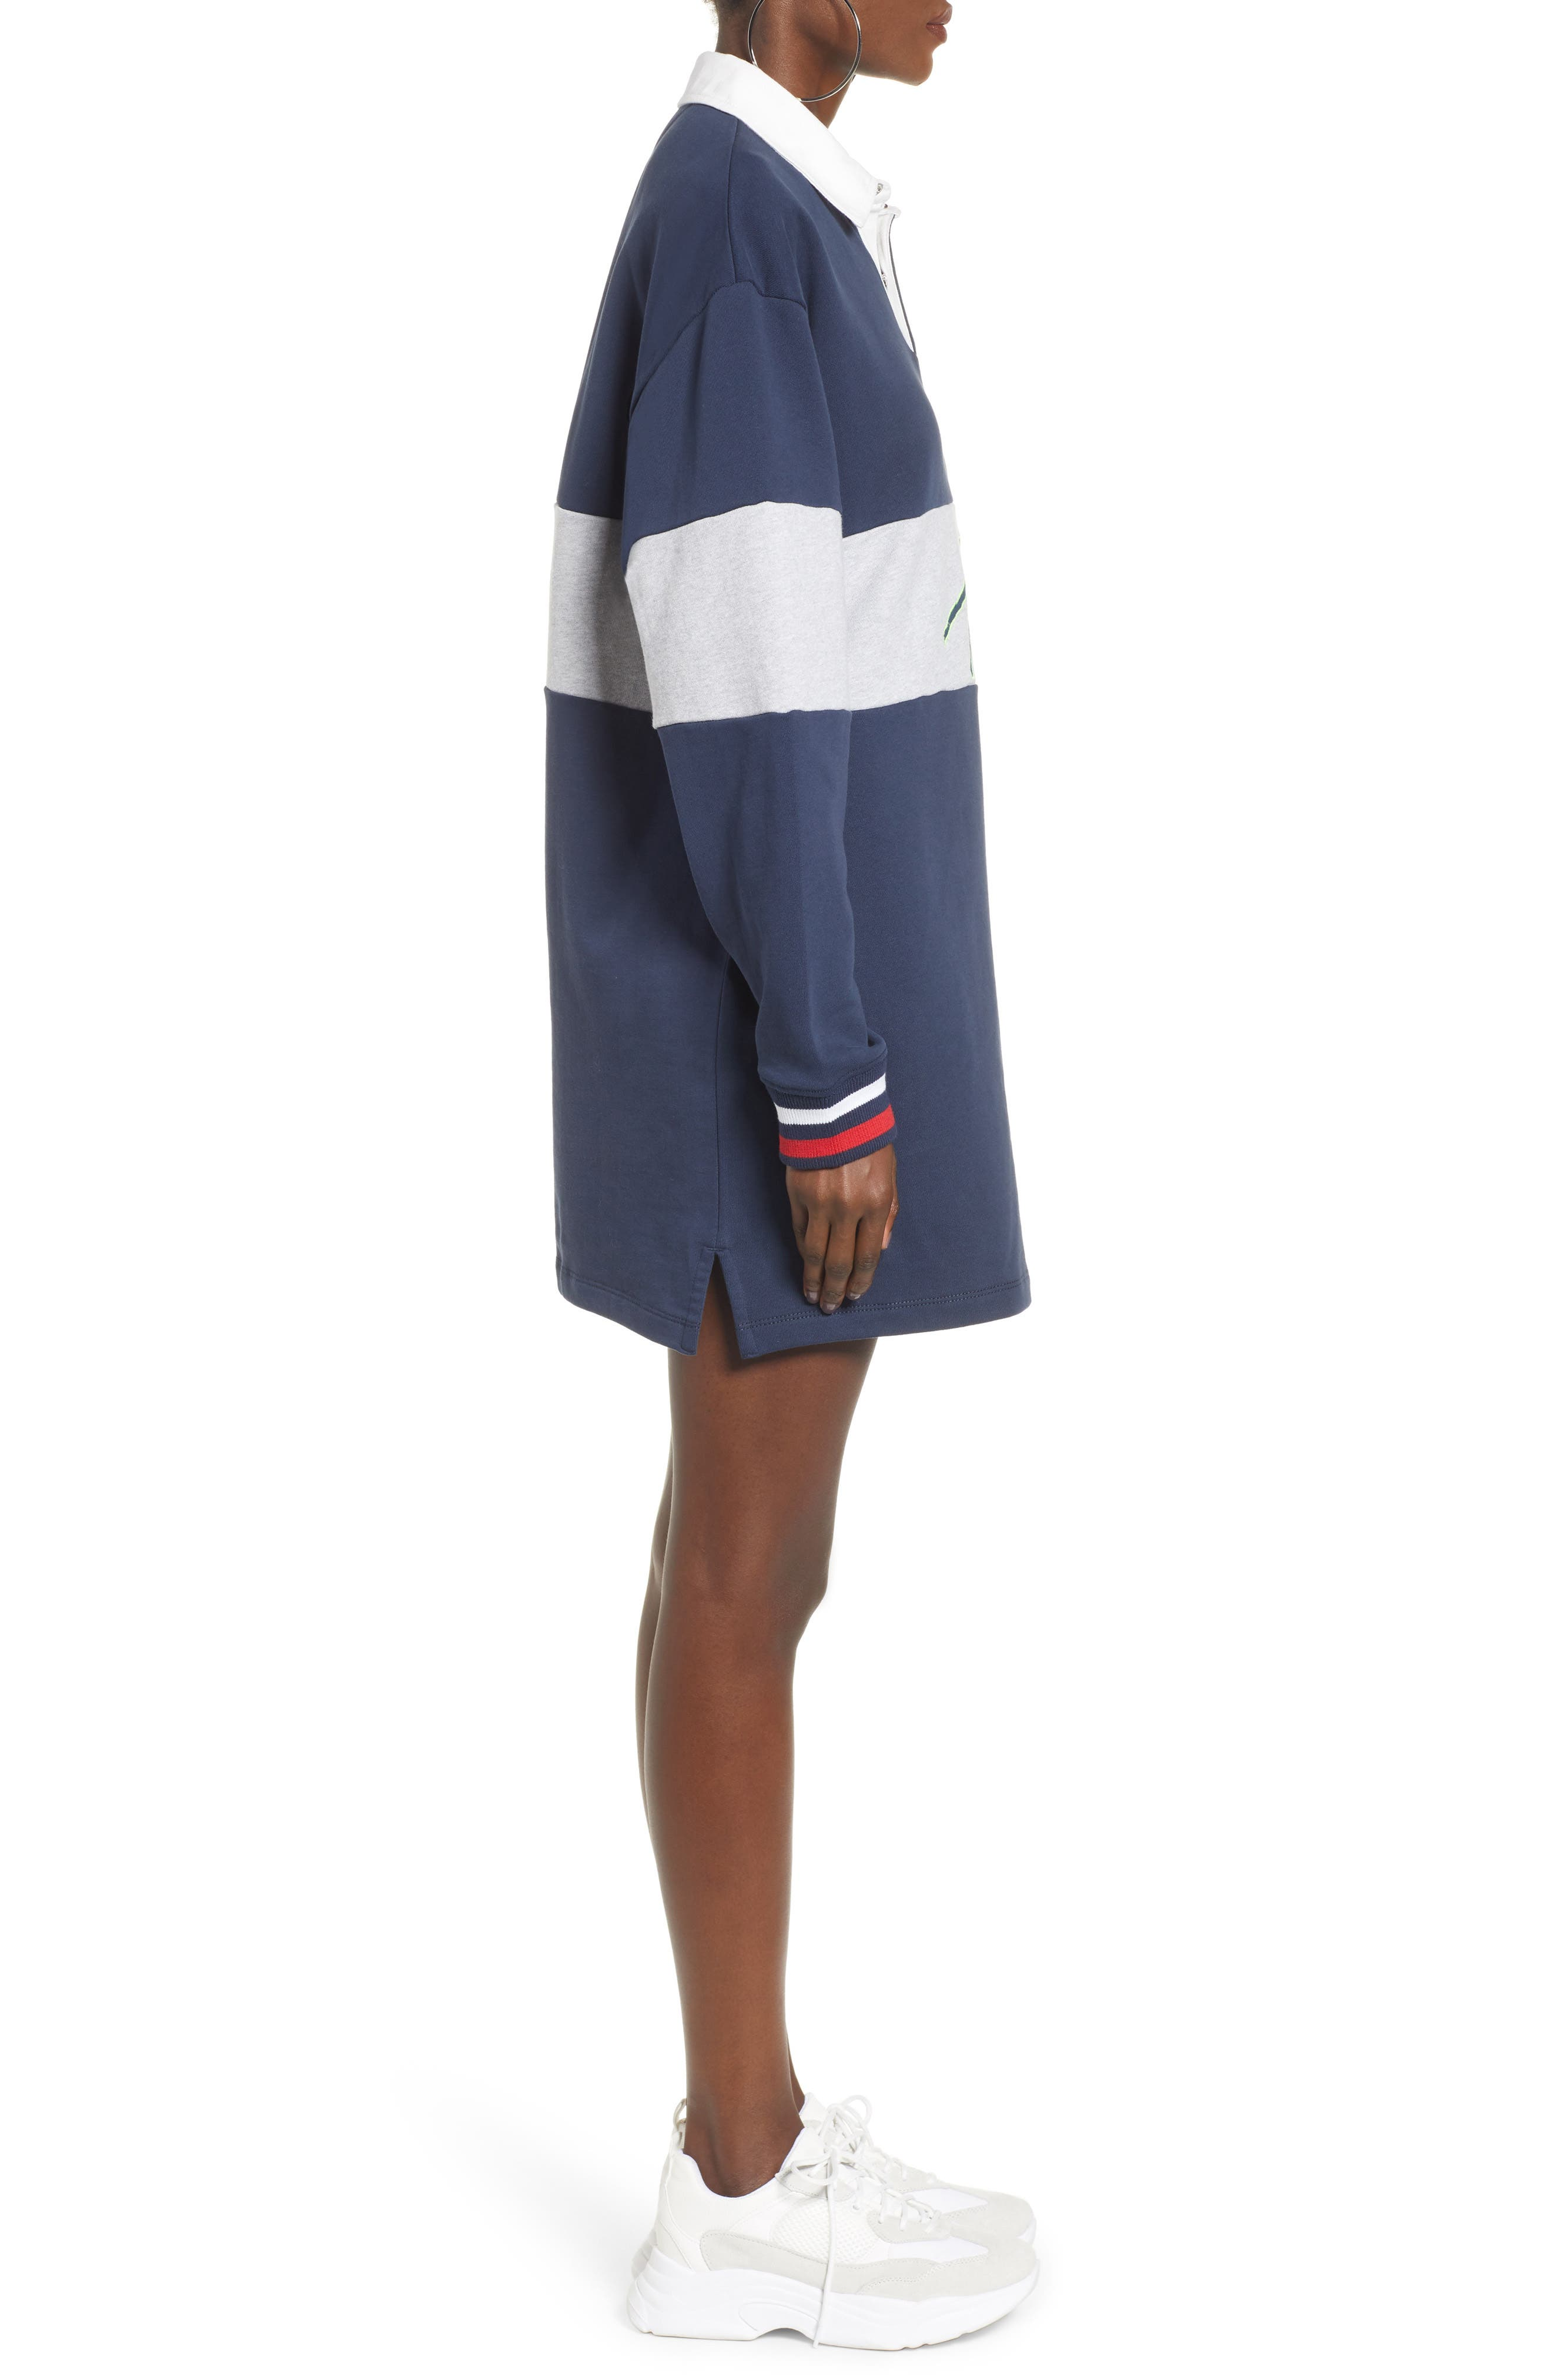 TOMMY JEANS, Logo Rugby Dress, Alternate thumbnail 4, color, 400